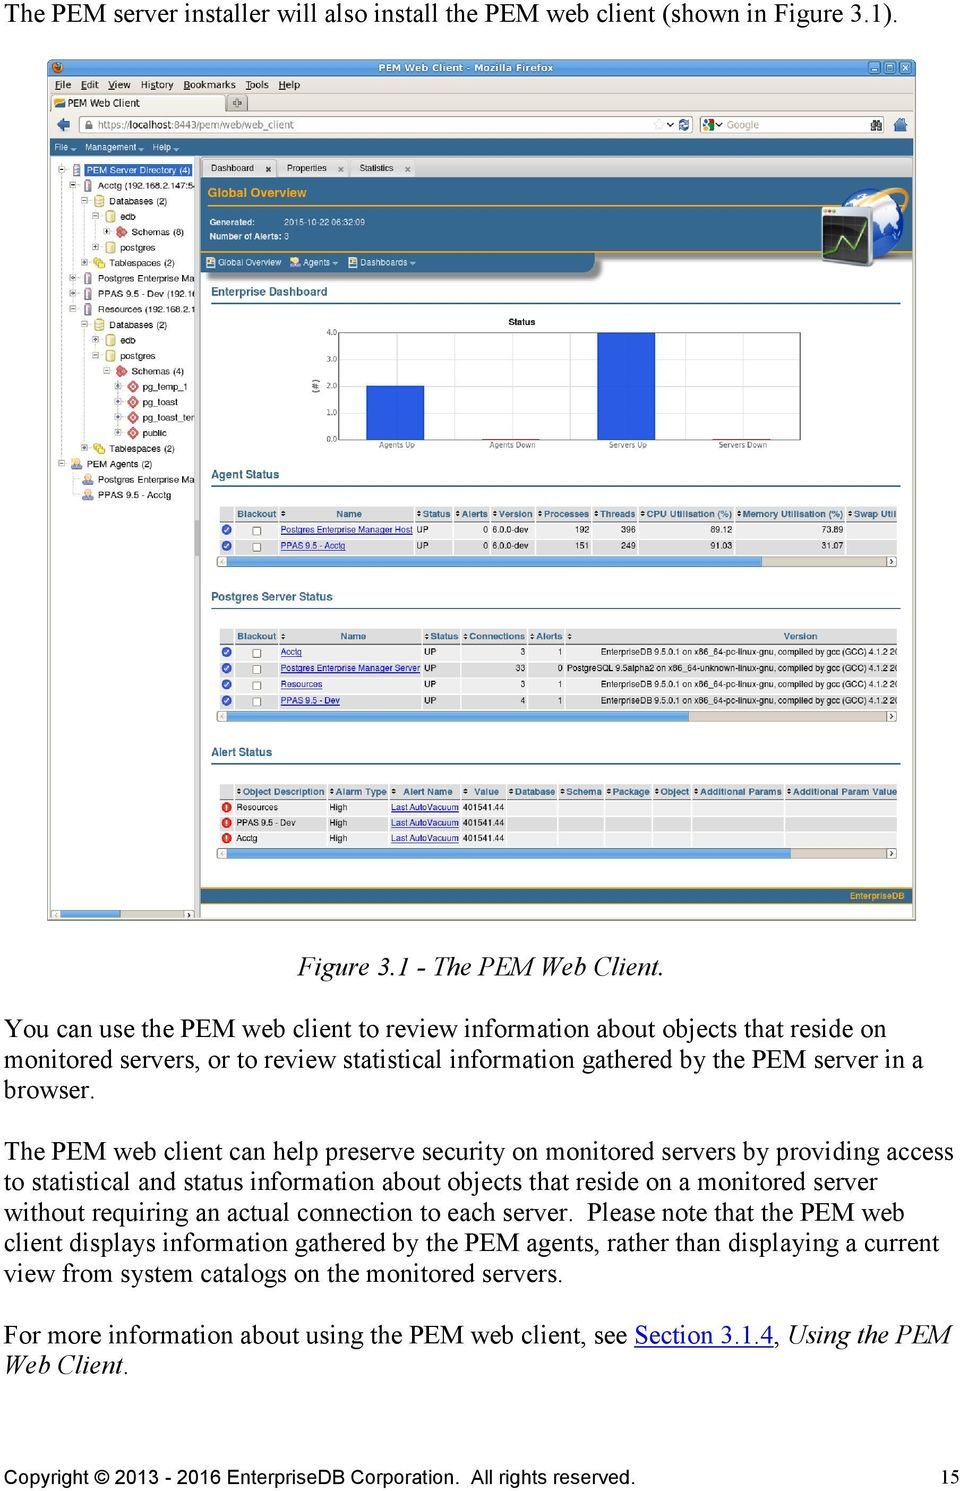 The PEM web client can help preserve security on monitored servers by providing access to statistical and status information about objects that reside on a monitored server without requiring an